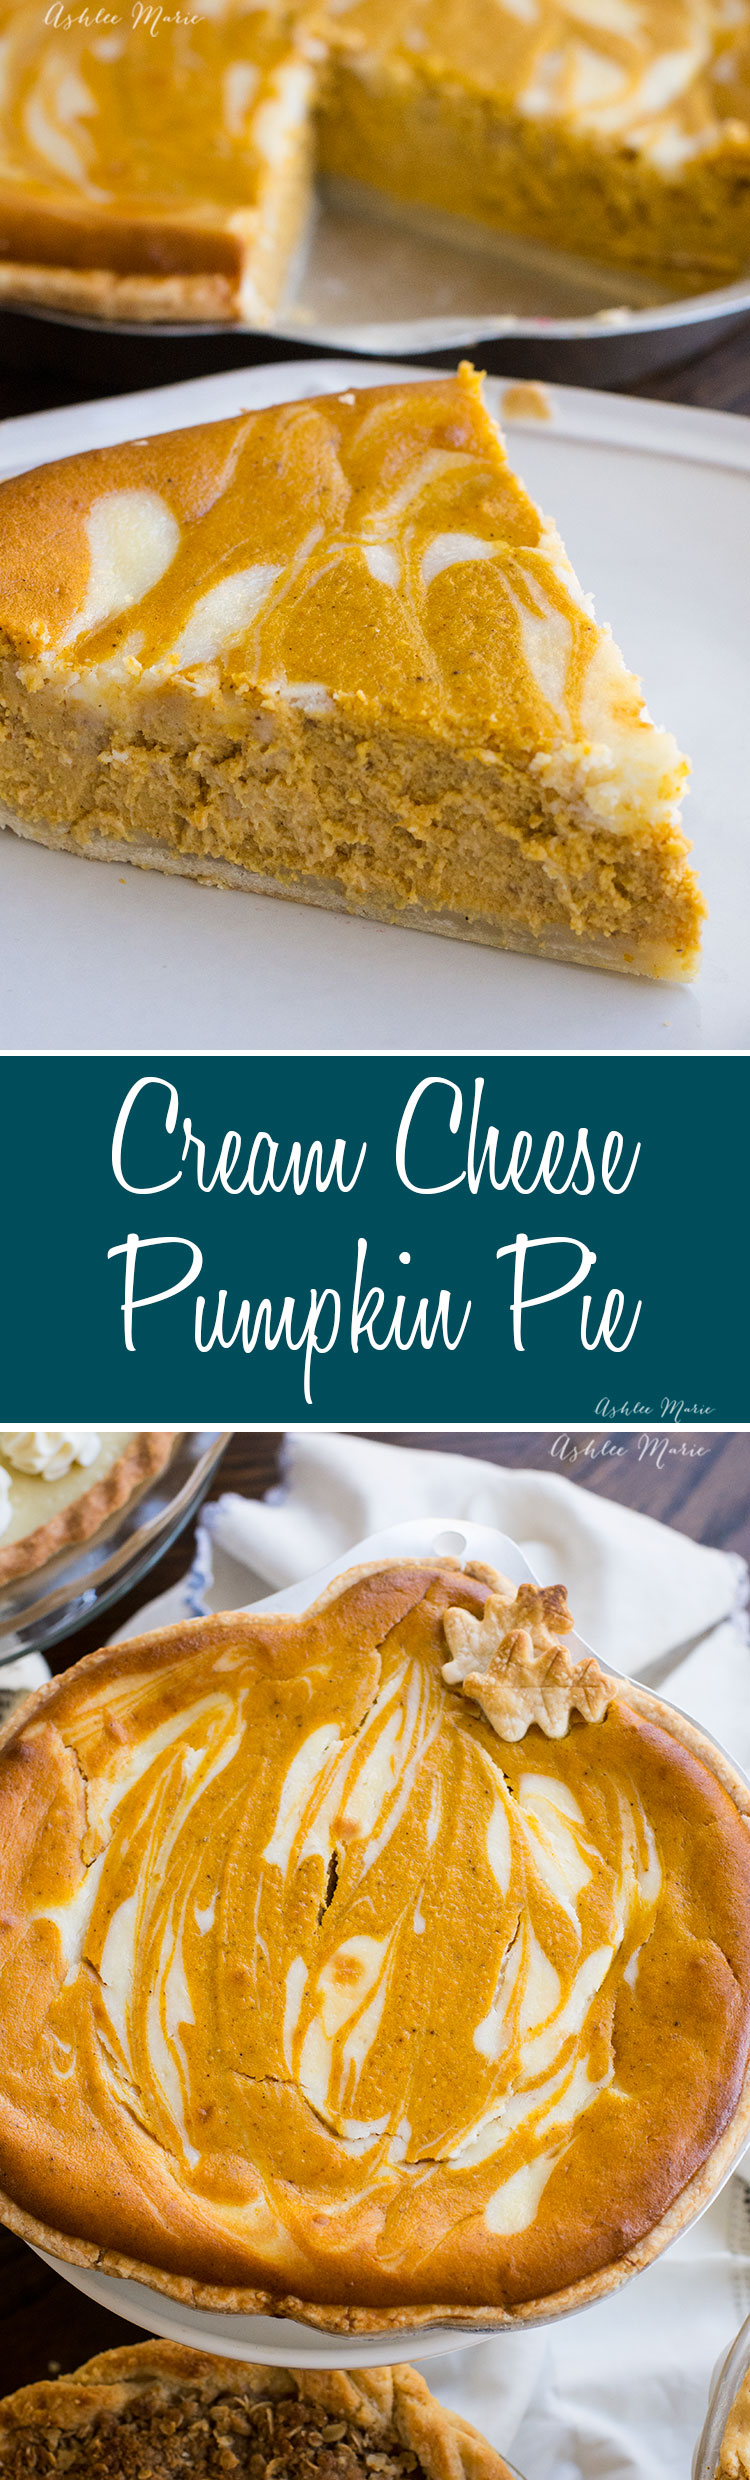 this pie has the flavor of a classic pumpkin pie but with an incredible texture as well as a pretty surface! This pie is always a huge hit